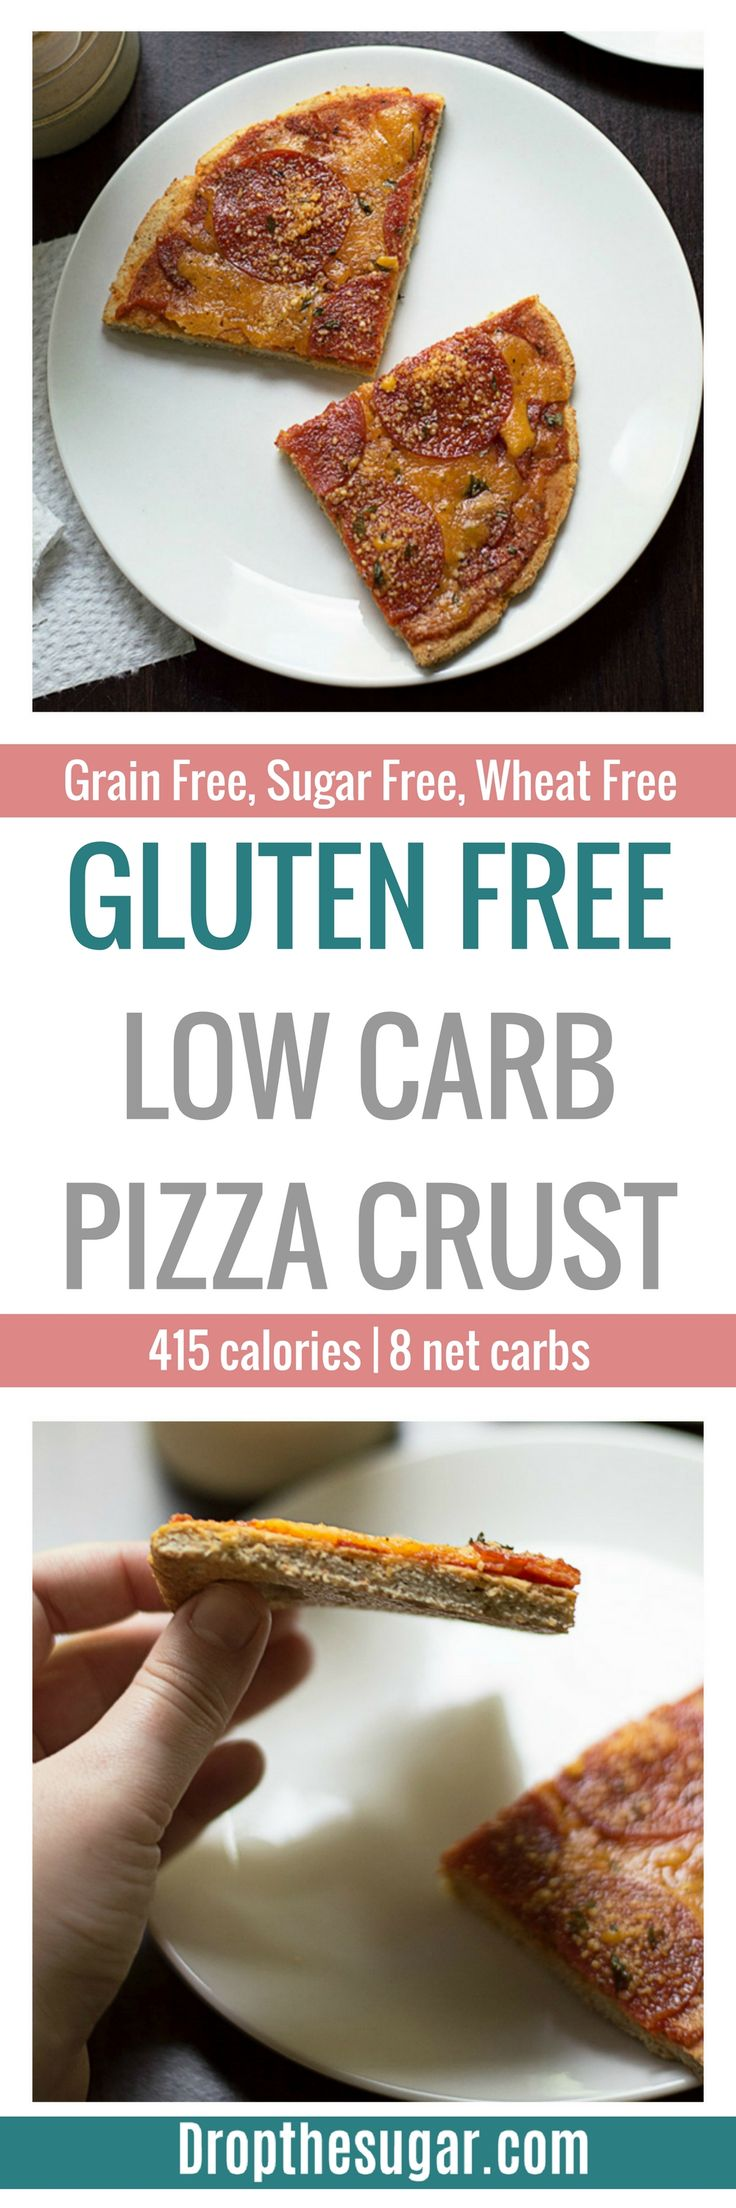 Gluten Free Low Carb Pizza Crust | a coconut flour pizza crust recipe ...